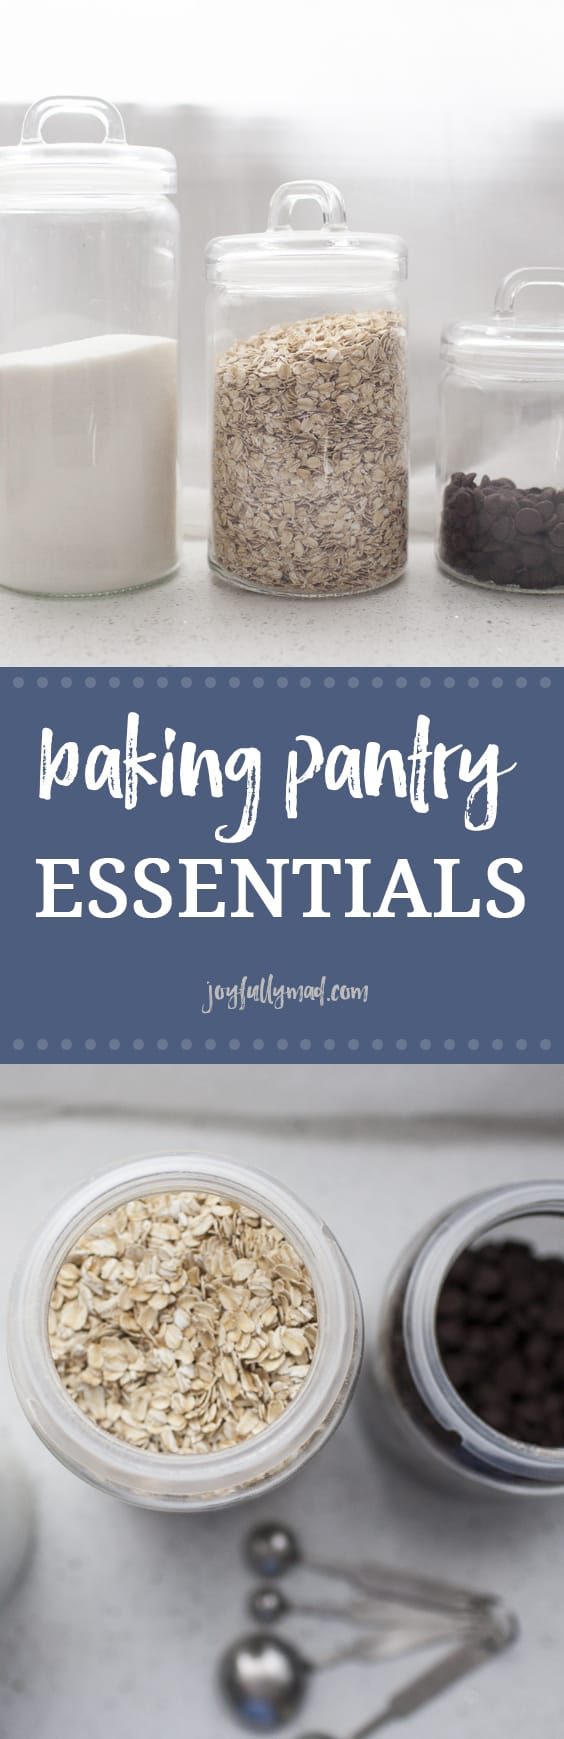 Whether you bake often or just once in a blue moon, there are some baking pantry essentials you should always have on hand to make sure that you?re able to bake everything from bread, to muffins, to cookies, whenever the mood strikes! These are the baking pantry essentials every kitchen should be stocked with!